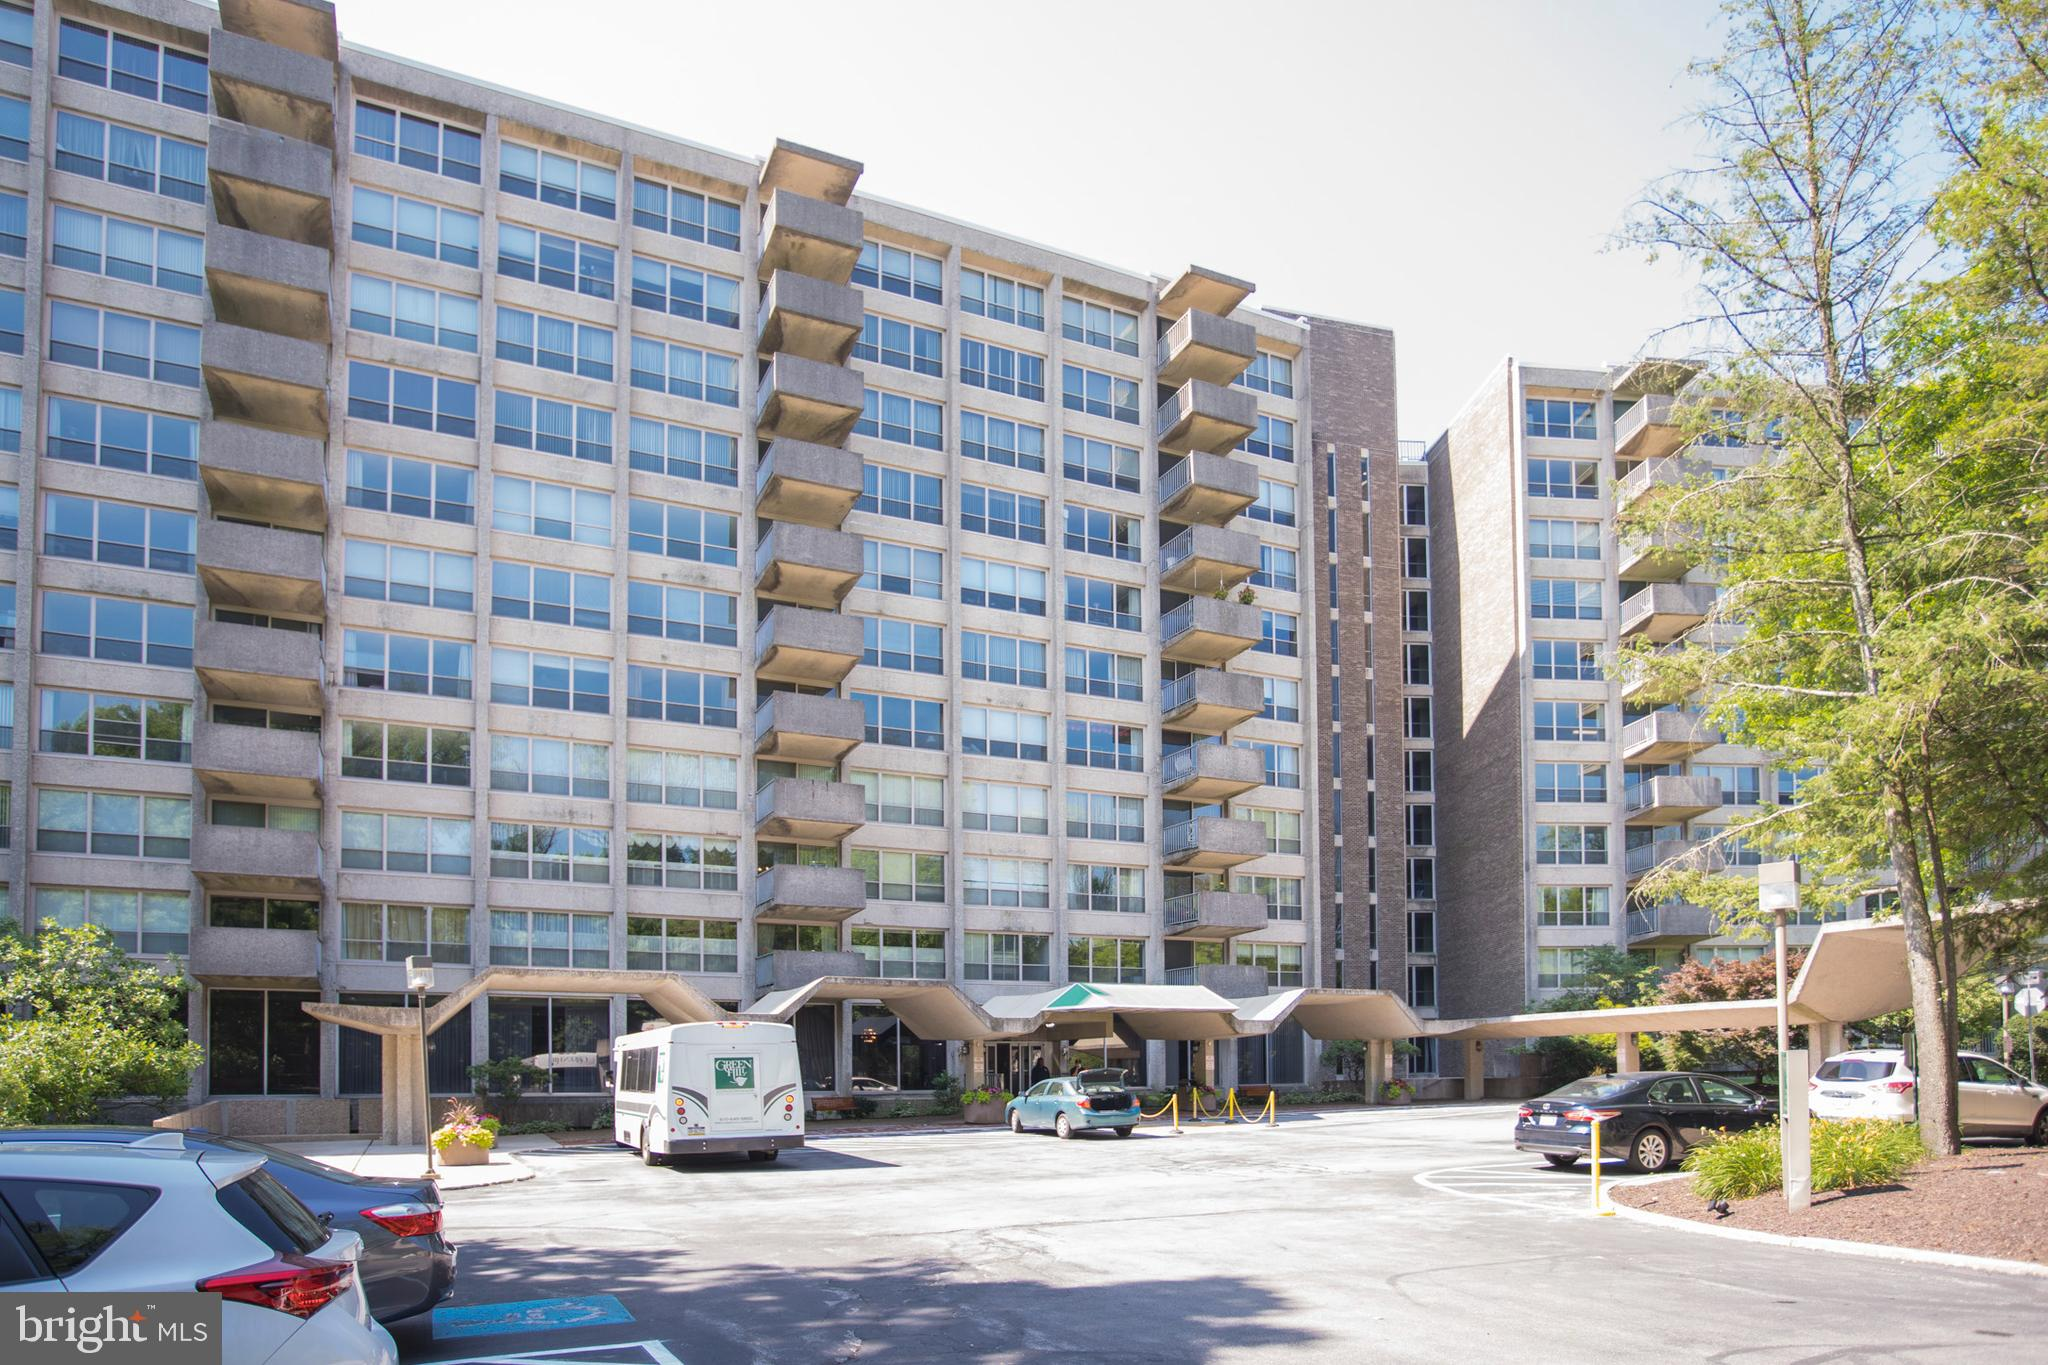 *** Presenting #ED1128, a 1 bed/1 bath PH unit at Green Hill *** This end-unit has been well-cared for and is awaiting its next owner. Positioned perfectly in close proximity to the elevator, it sits on the top floor, with a neighbor only on one side.  This situation keeps the unit nice and quiet.  Enjoy all of the amenities that Green Hill possesses. The Green Hill Condominium is a friendly community of 543 condominium apartments situated on 23 beautifully wooded and landscaped acres in the desirable Wynnewood, Lower Merion school district with so many to offer. Lushly landscaped grounds with acres of mature trees, manicured lawns, shaded walkways and a delightful wooded picnic area near a meandering stream. Uniformed doormen are on duty 24-hours a day, every day of the year. Attended gatehouse at Green Hill's property entrance for monitoring and controlling access. Green Hill's campus is comprised of 2 separate 11 story buildings. Automatic building entrance door opens and closes for you hands free. Schedule your showing today and see all that this property has to offer!